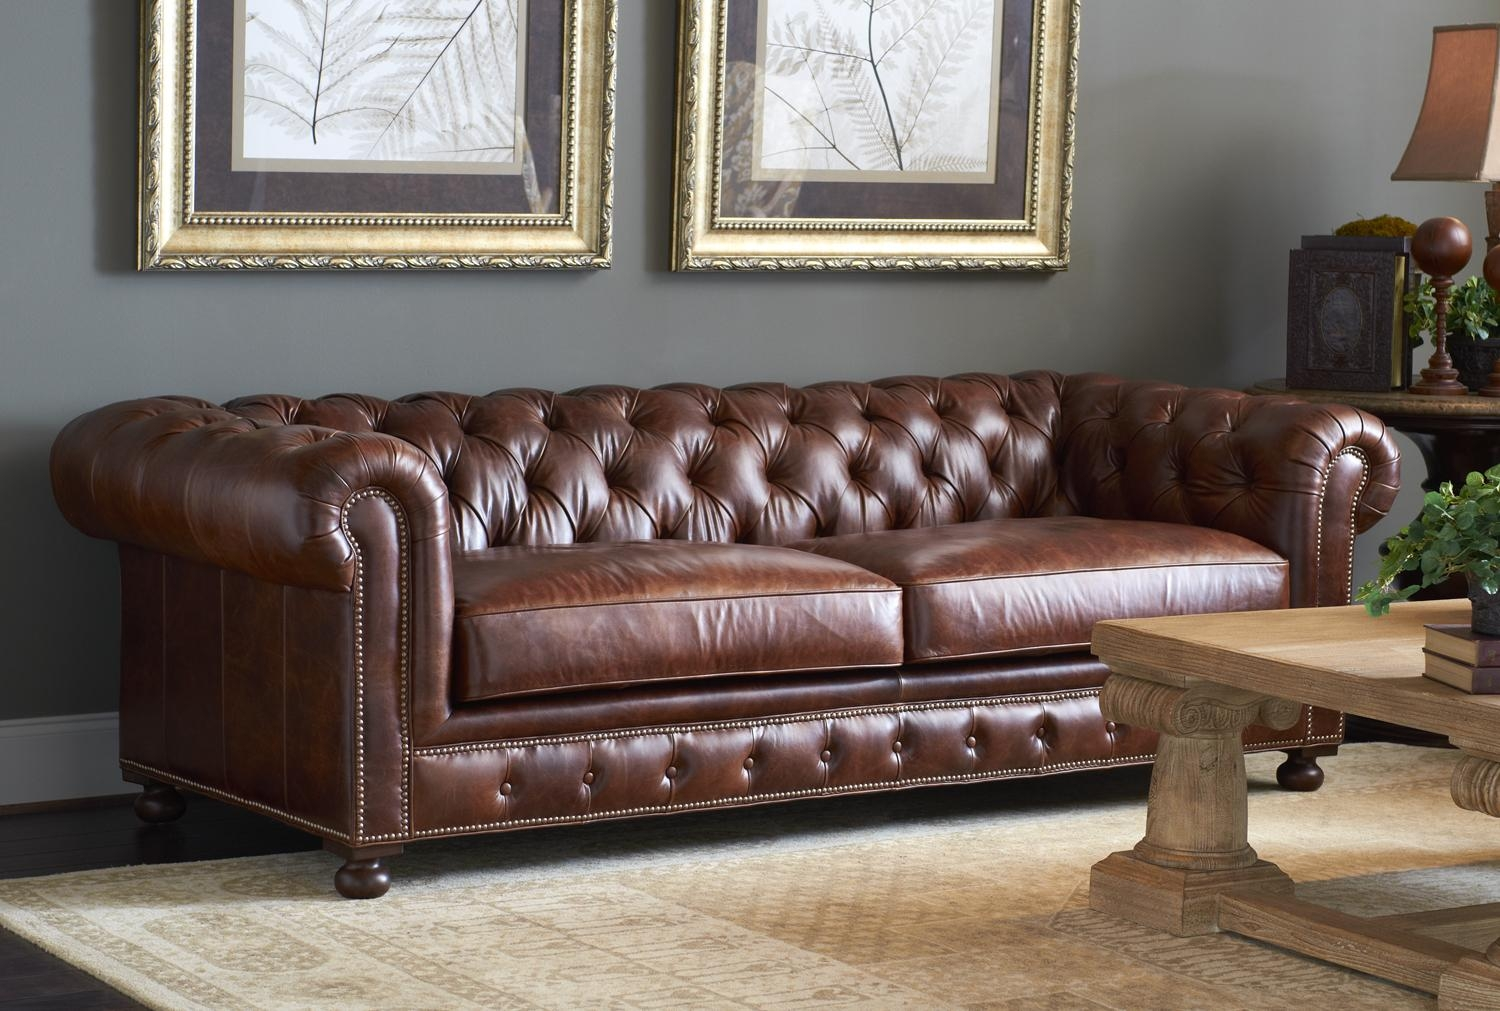 Leather Sofa Tufted Regarding Brown Leather Tufted Sofas (Image 10 of 20)